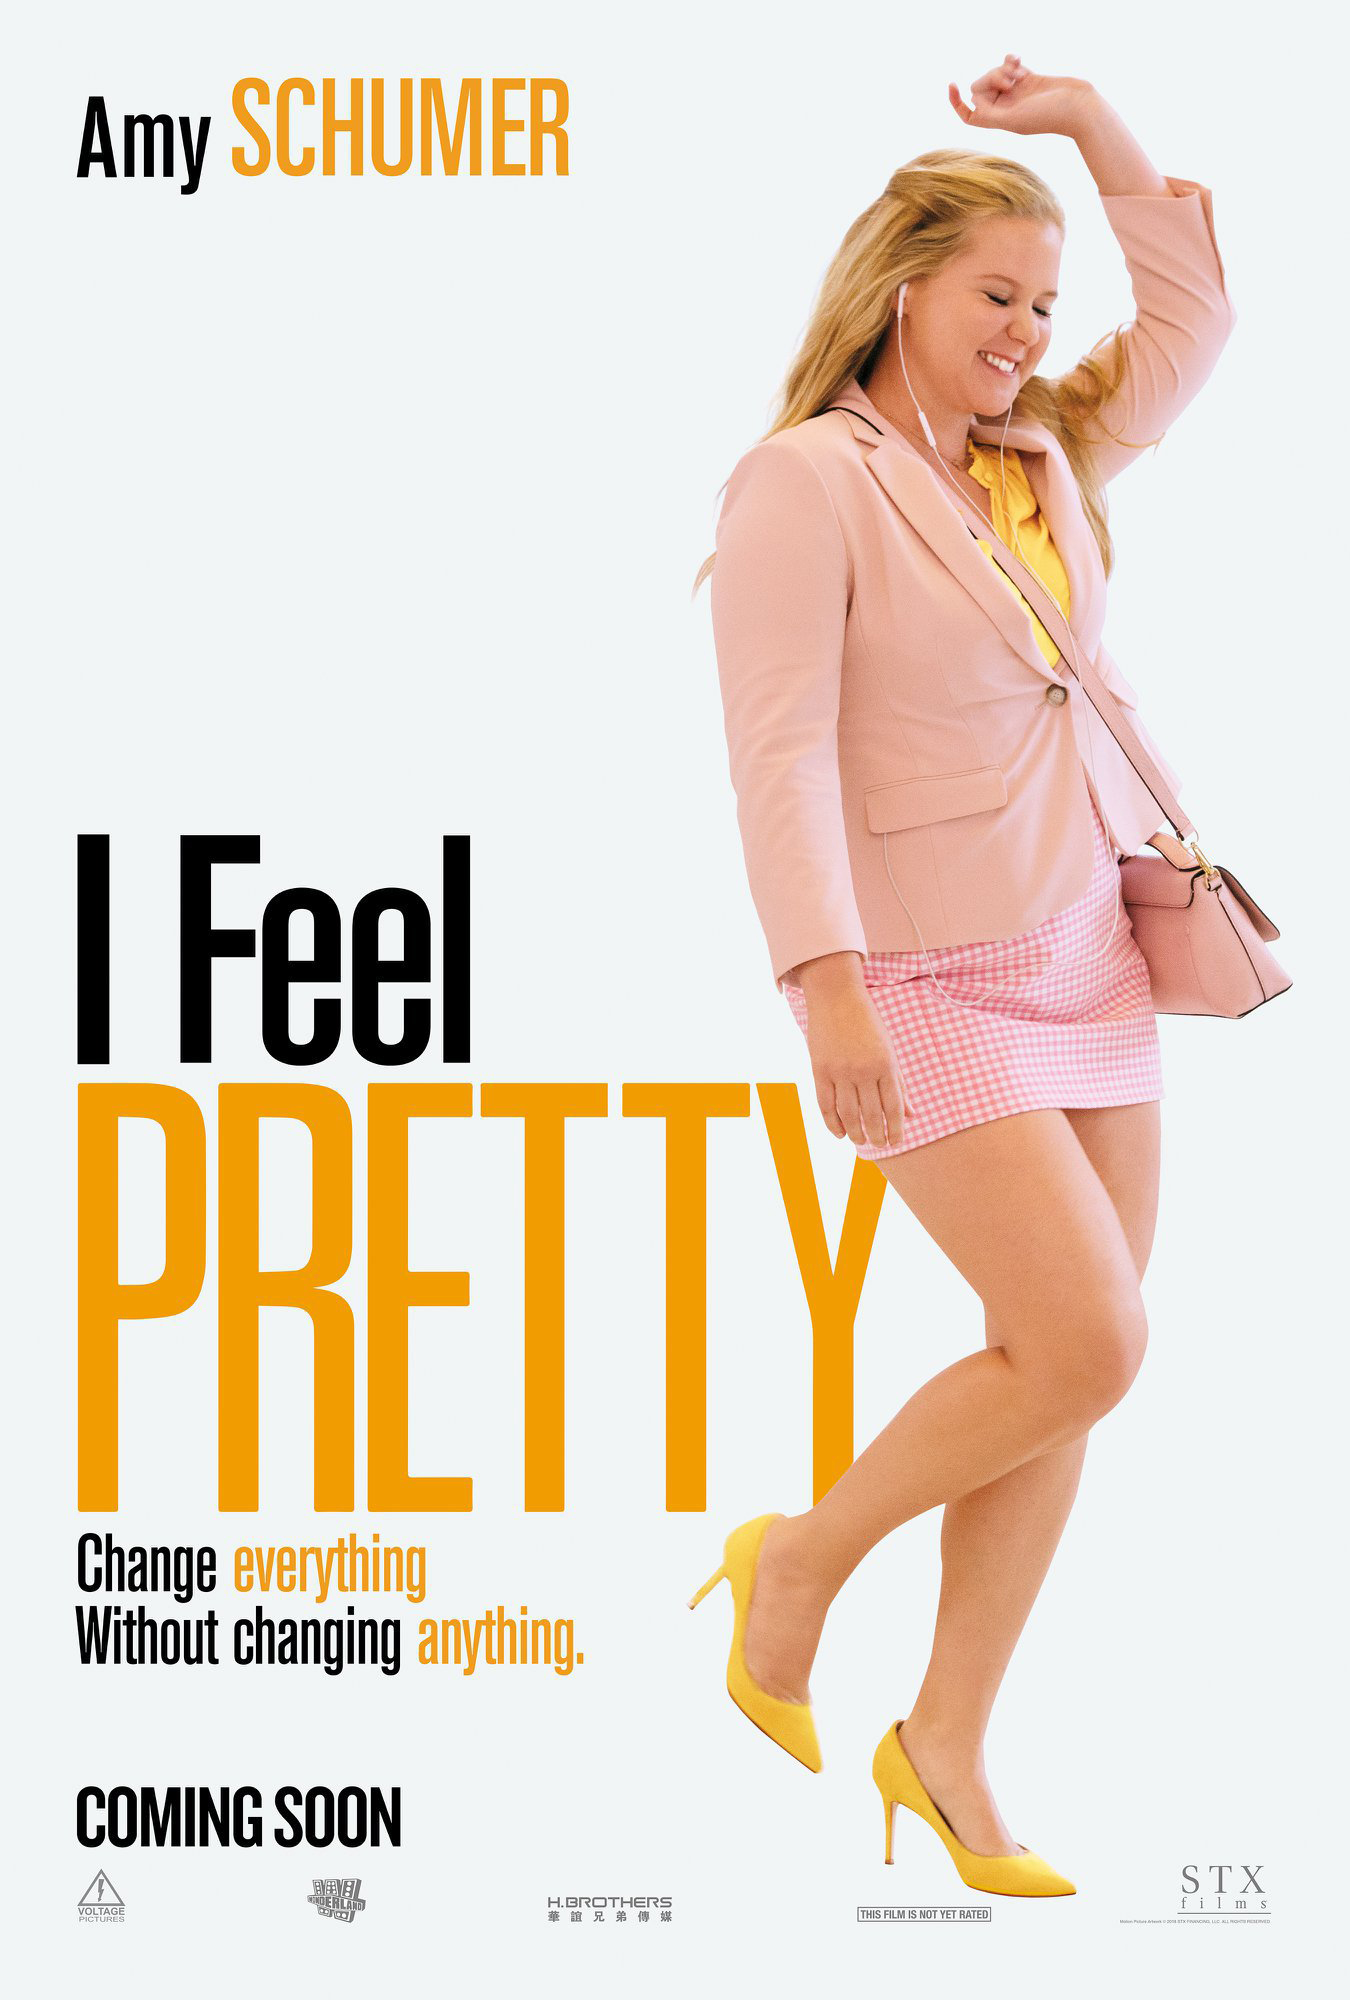 I-Feel-Pretty-movie-poster-MarkSchafer-STX